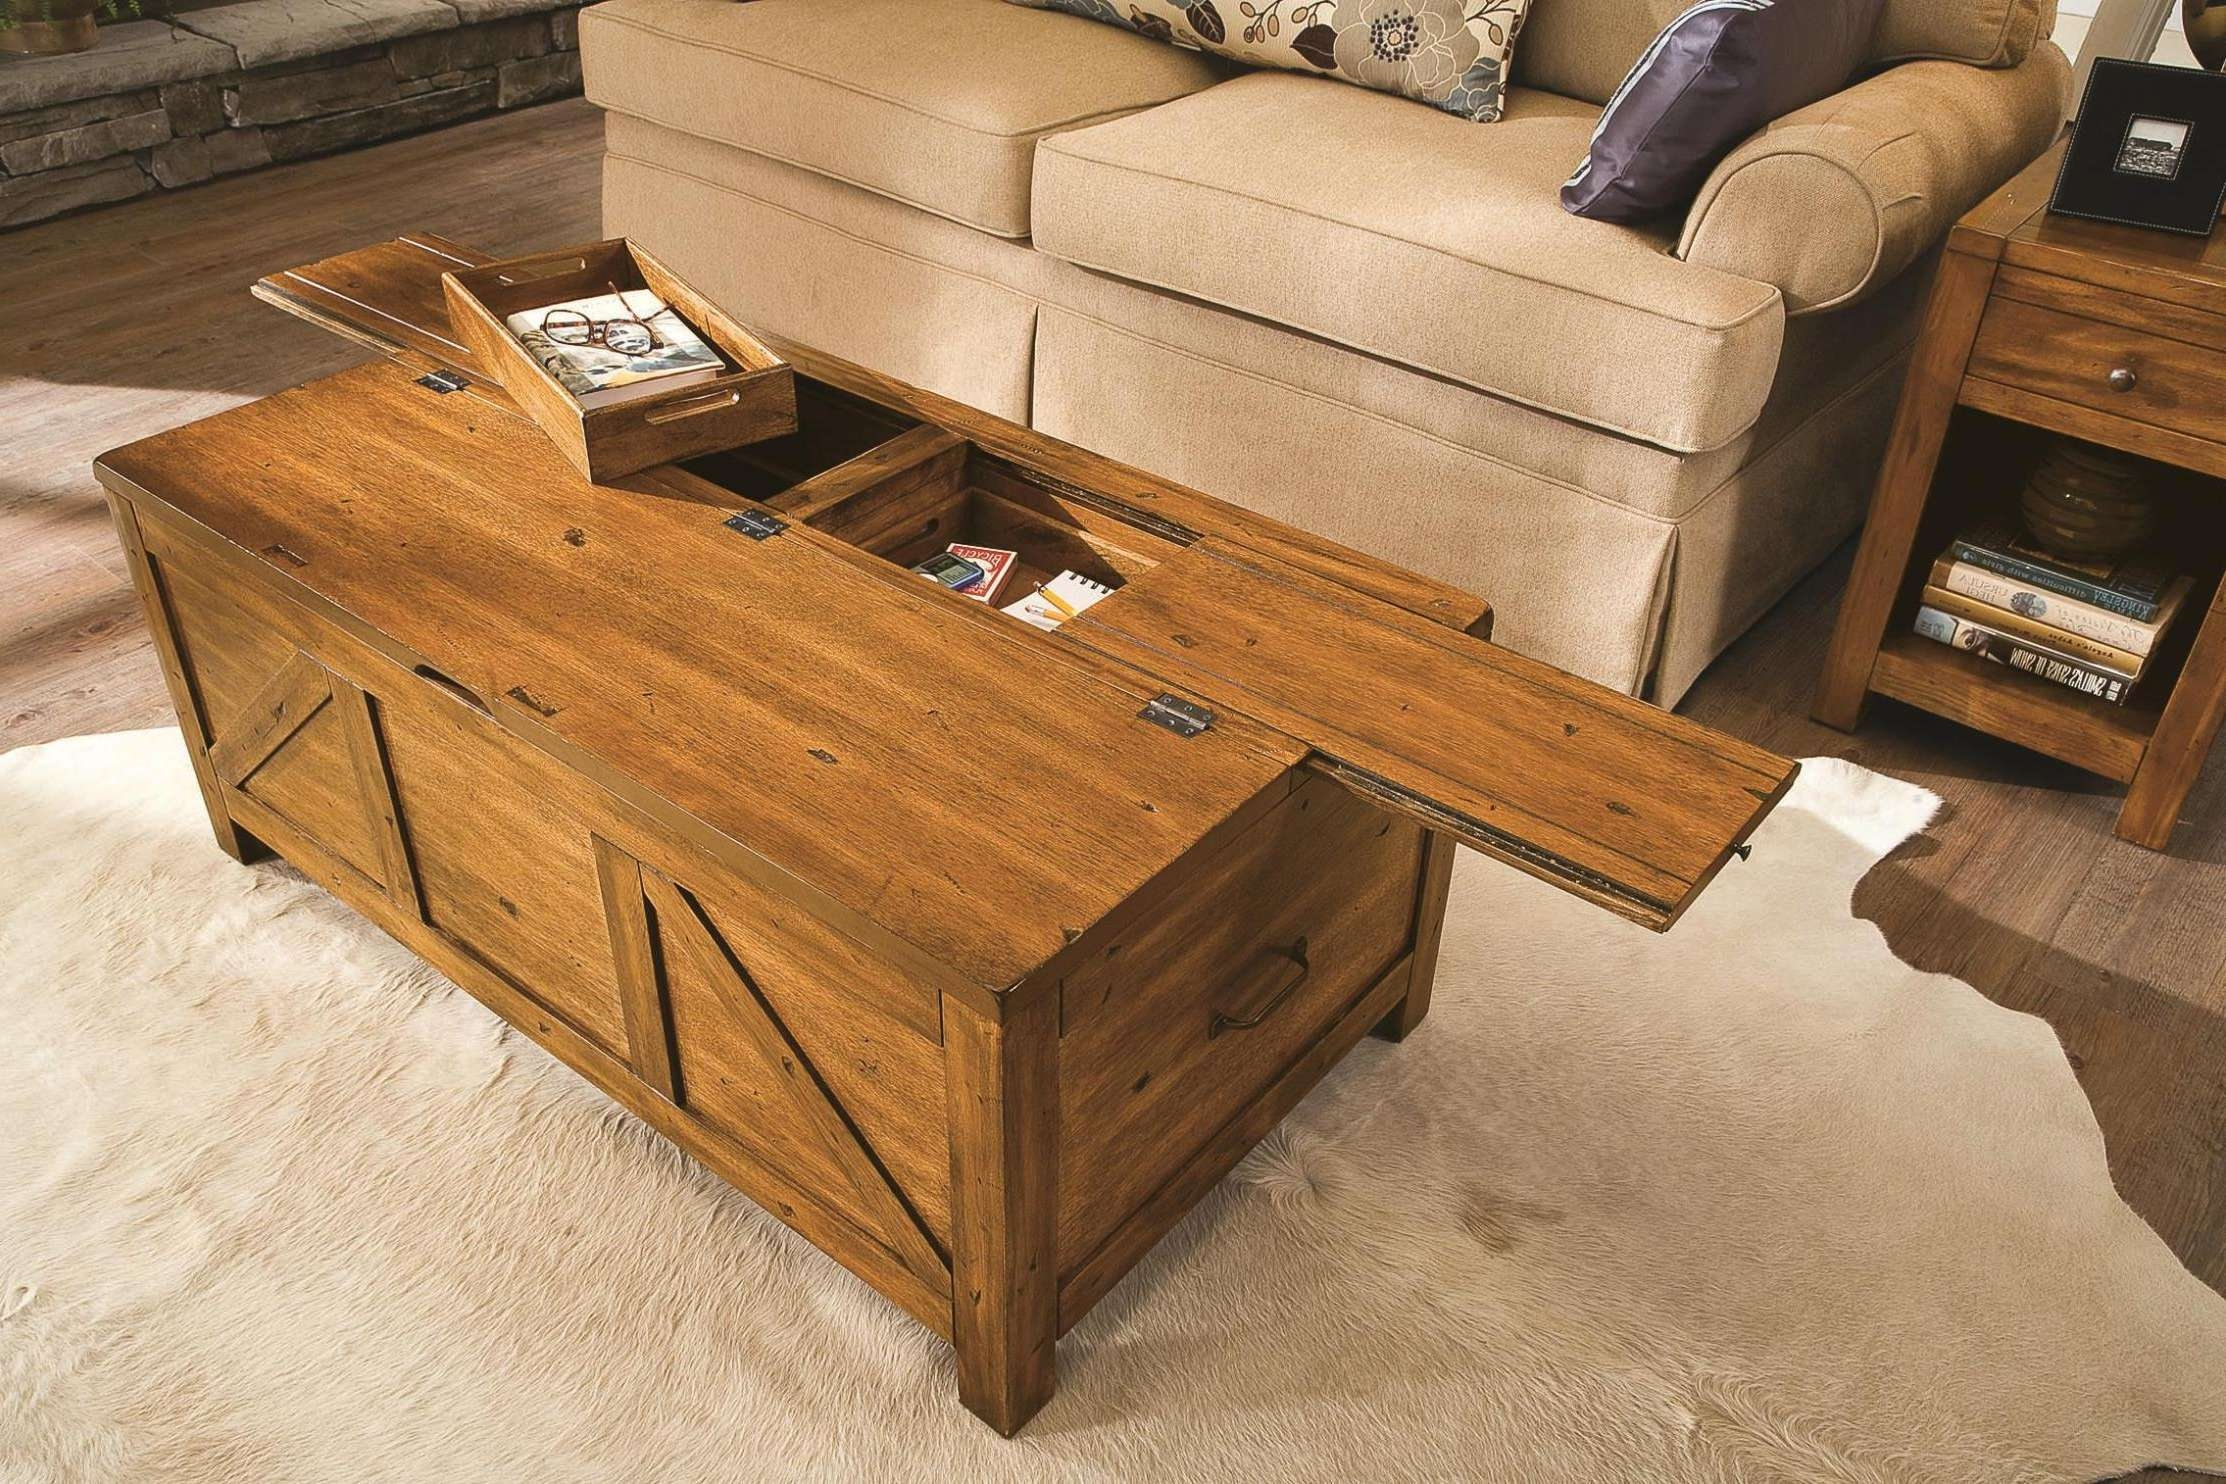 Coffee Tables : Furniture Trunks As Coffee Tables Storage Trunk Within Latest Wooden Coffee Tables With Storage (View 6 of 20)